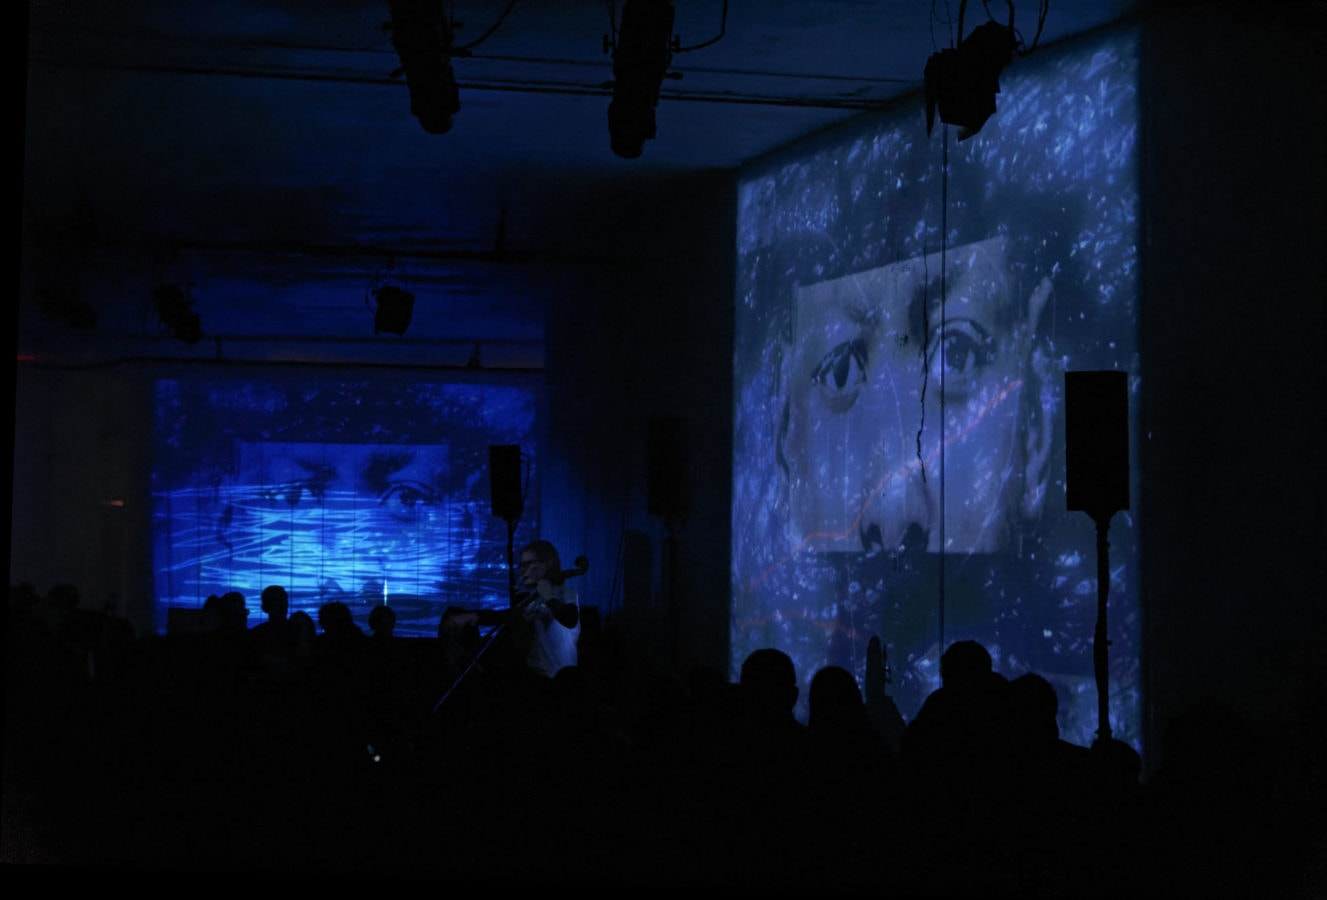 Amanda Gookin's Forward Music Project at the Direct Current Festival on March 29. Photo by Anu Dev. Projections by S. Katy Tucker.